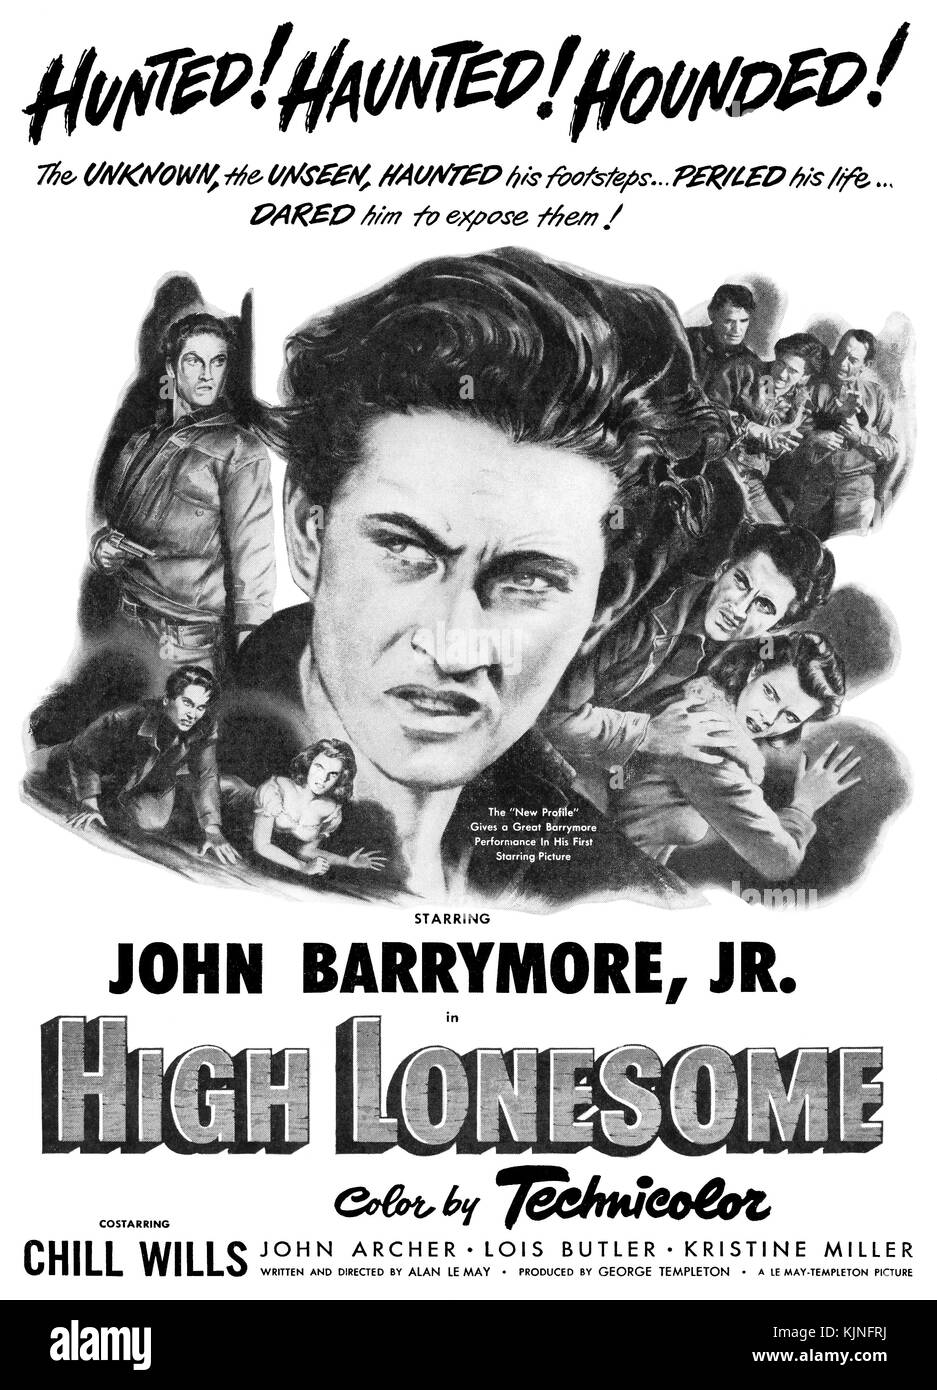 1950 U.S. advertisement for the Western High Lonesome, starring John Barrymore Jr. and Chill Wills. - Stock Image